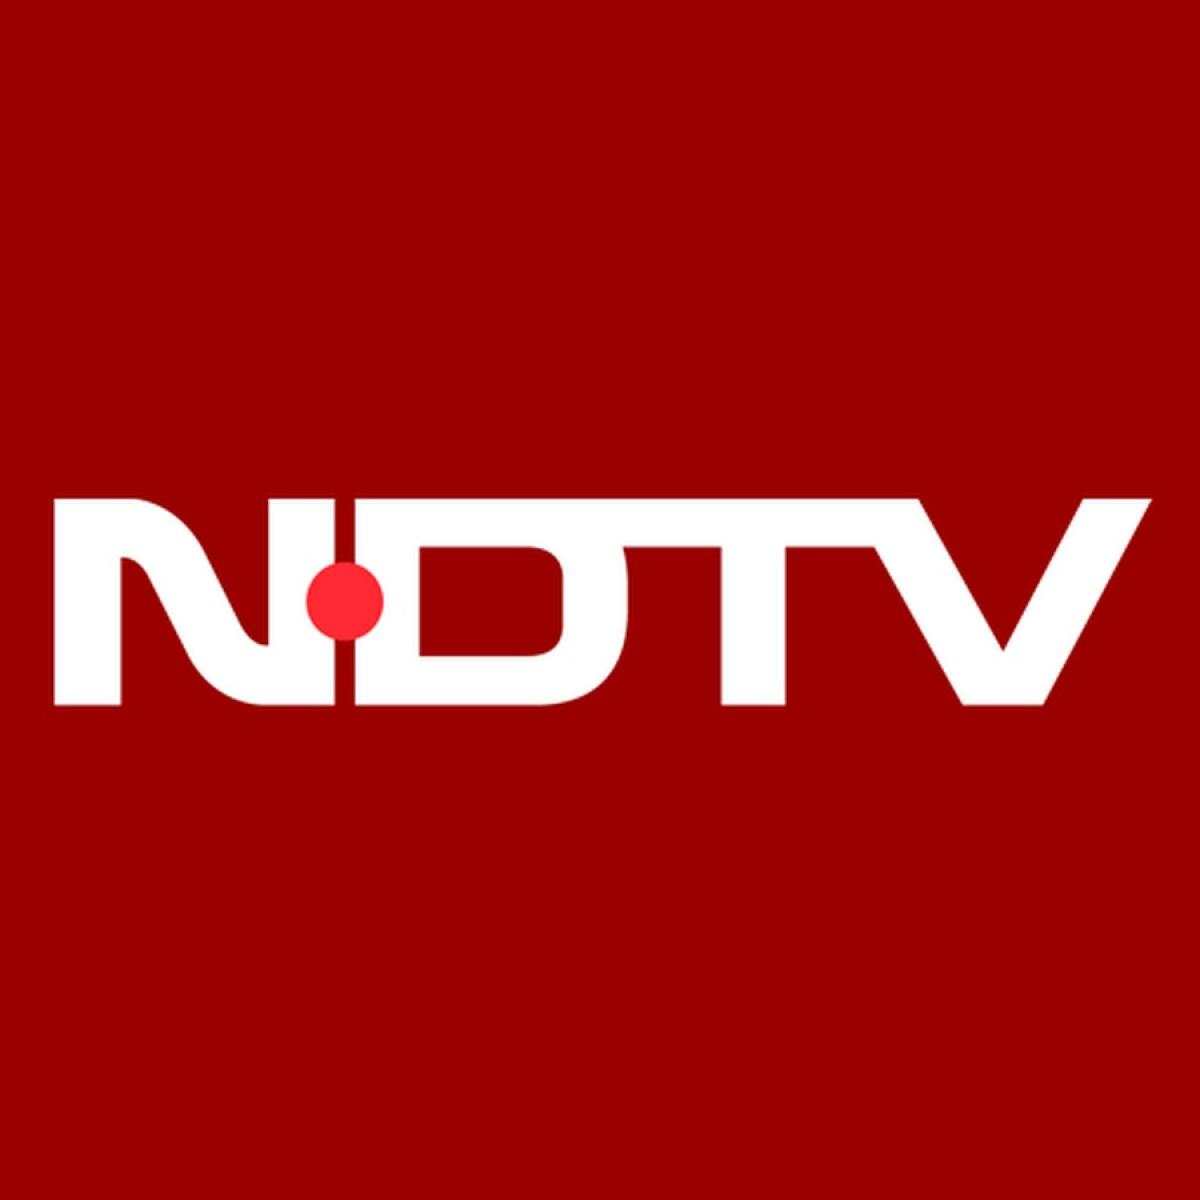 NDTV said the notice has been issued alleging violation of provisions of Section 12A (d) and (e) of Sebi Act read with Regulation 3(i) and Regulation 4 of Sebi (Prohibition of lnsider Trading) Regulations, 1992. File photo